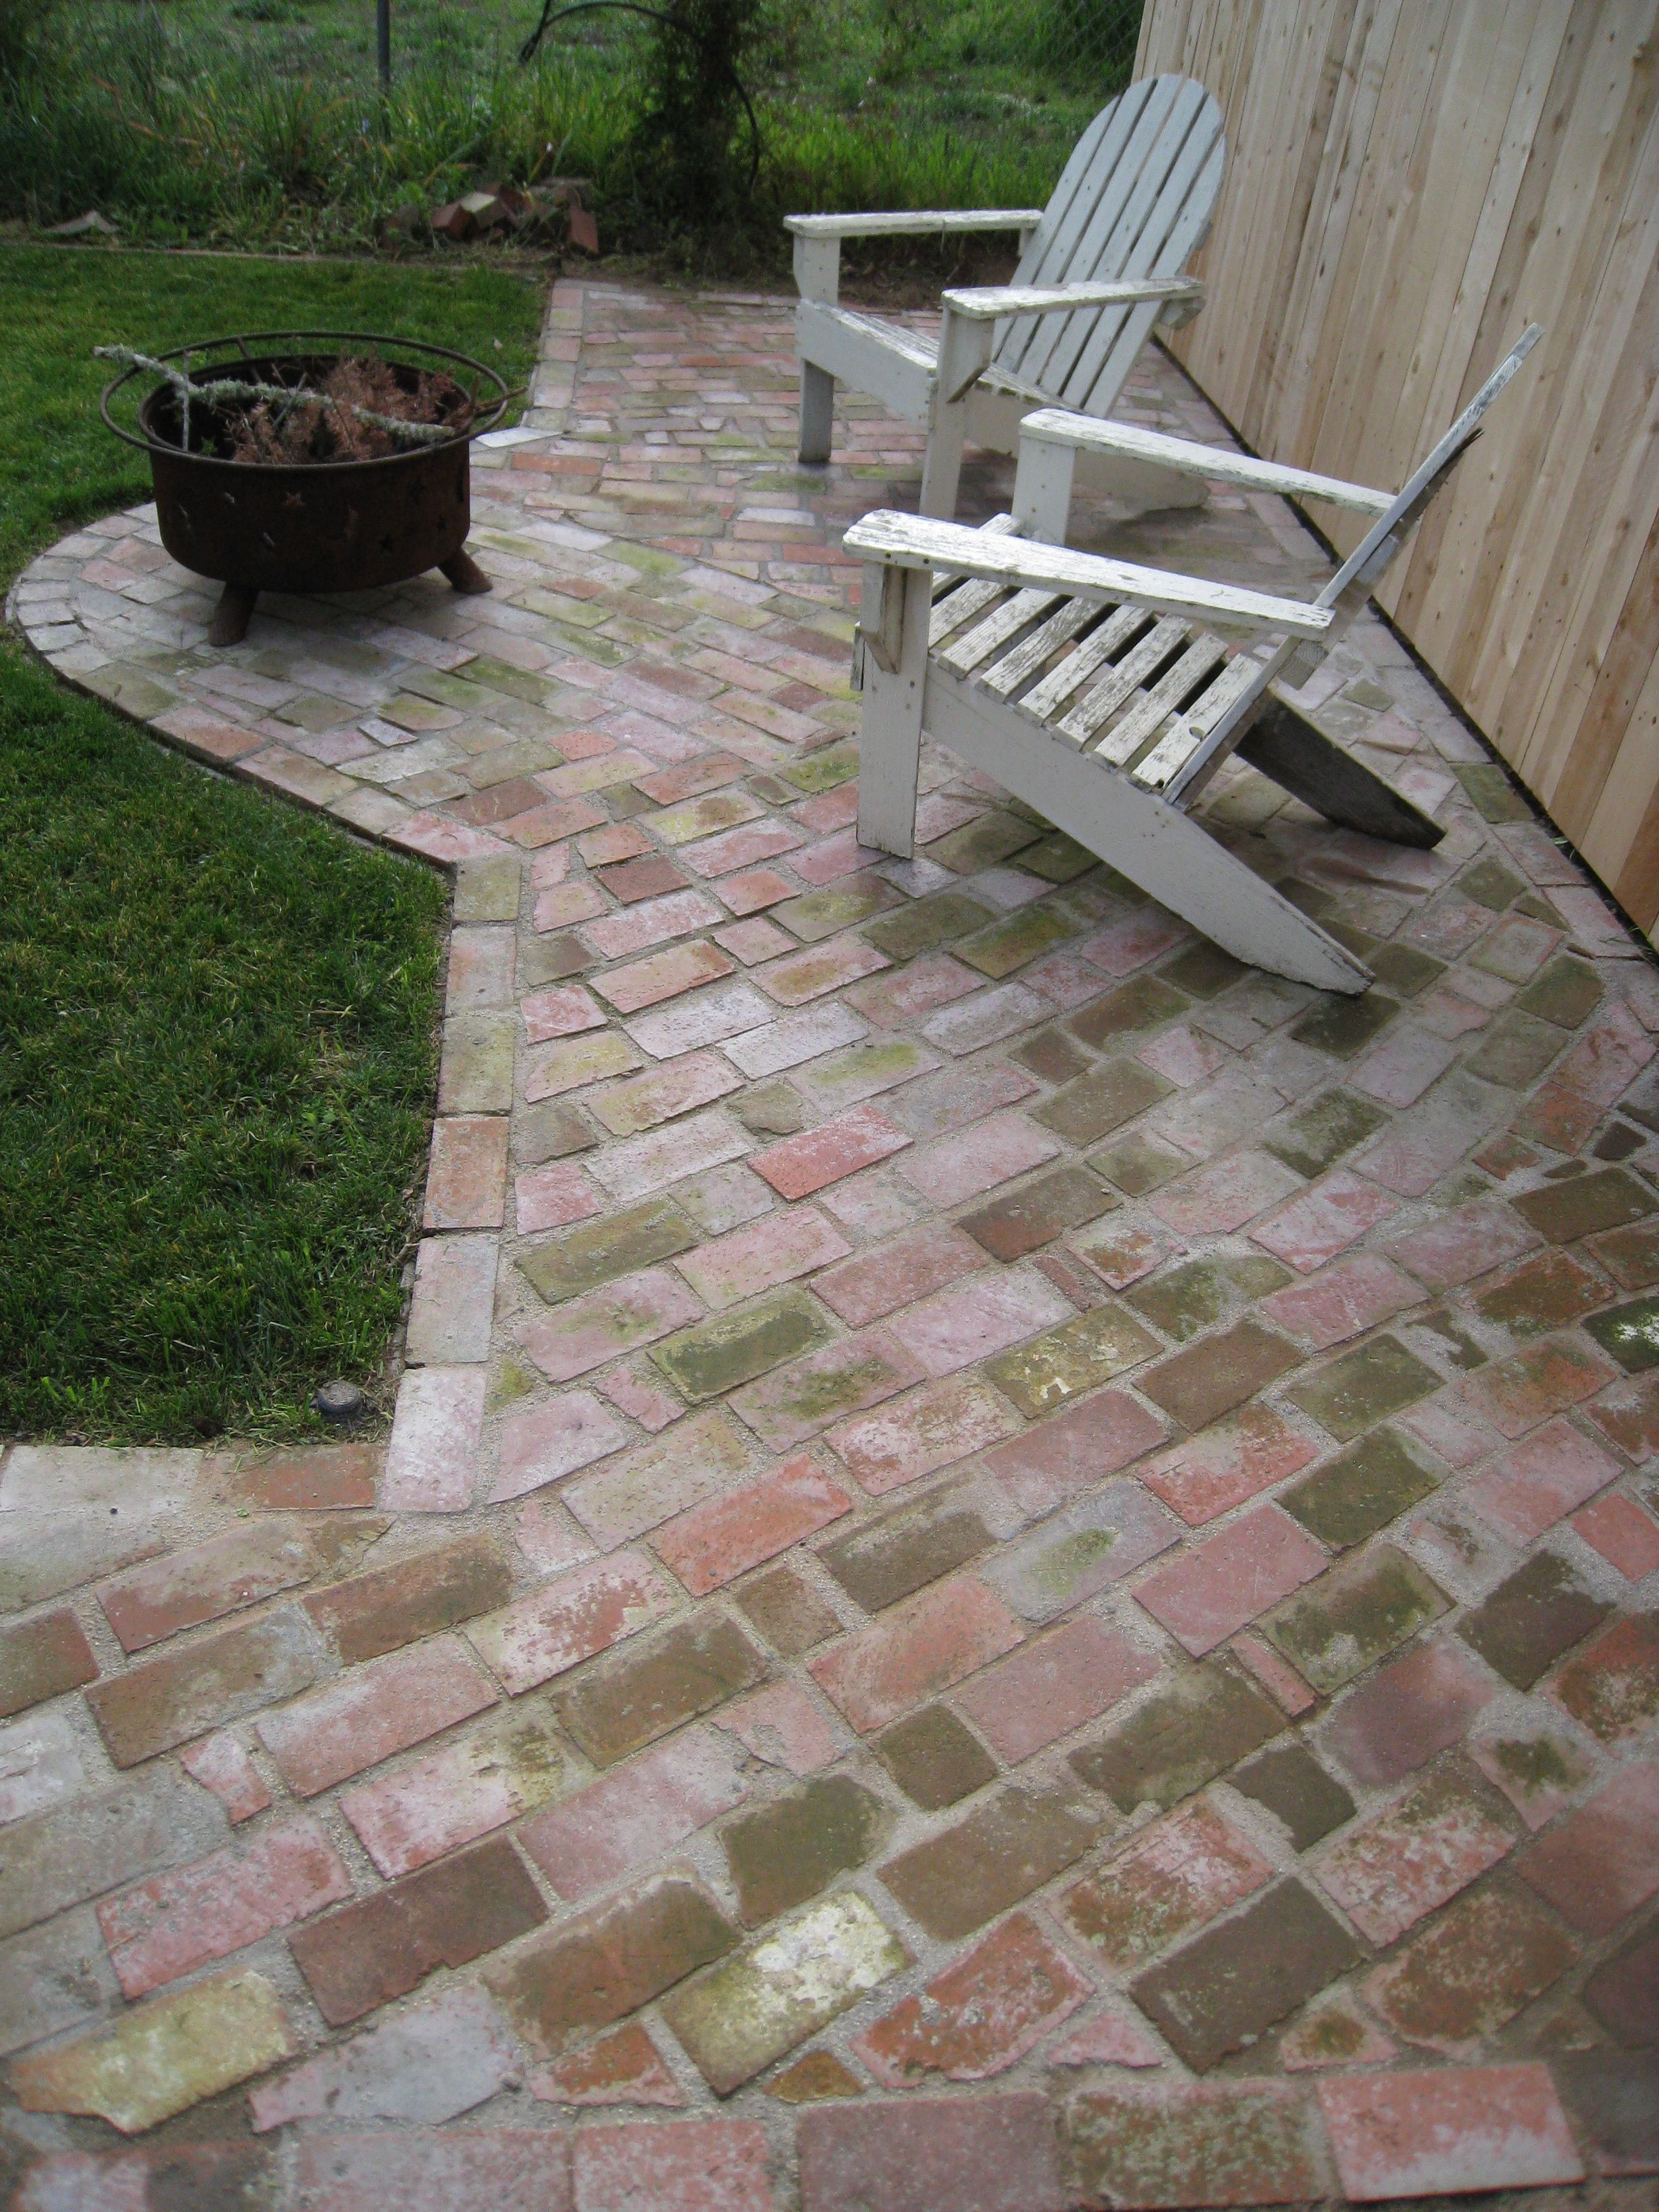 DIY Basic steps to make attractive walkways from reclaimed brick